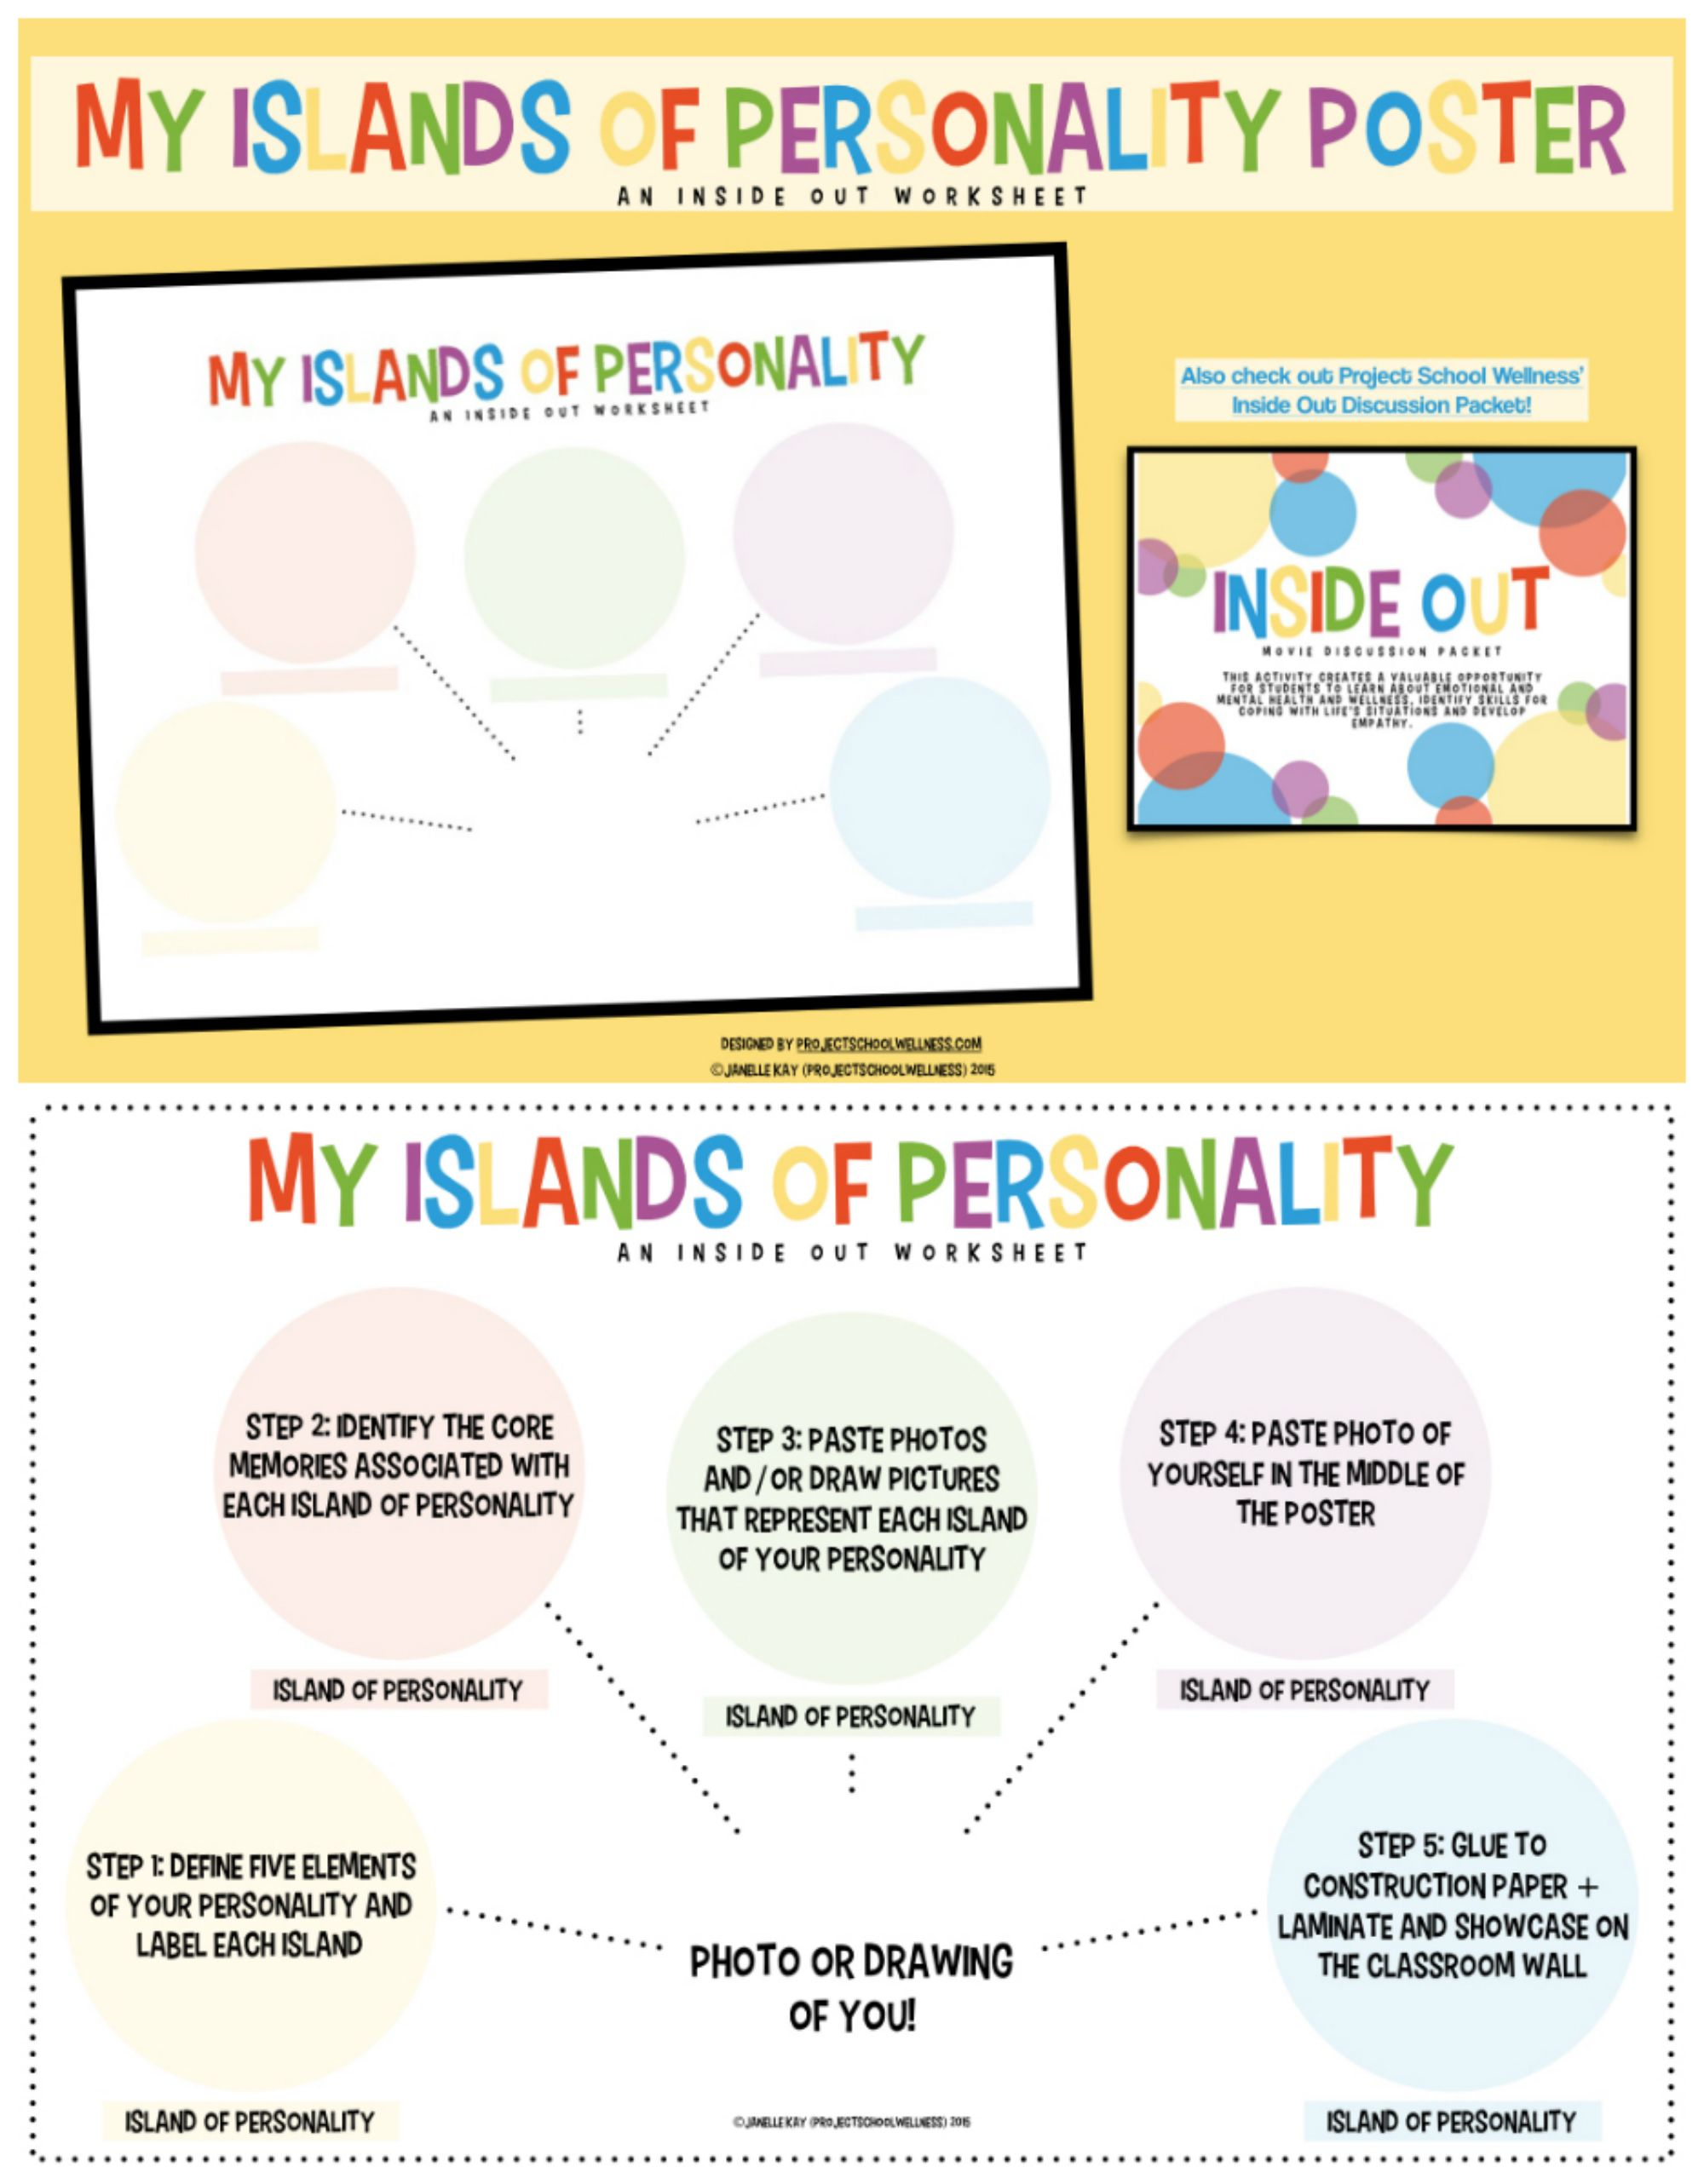 Teach Kids About Their Core Identity This Inside Out